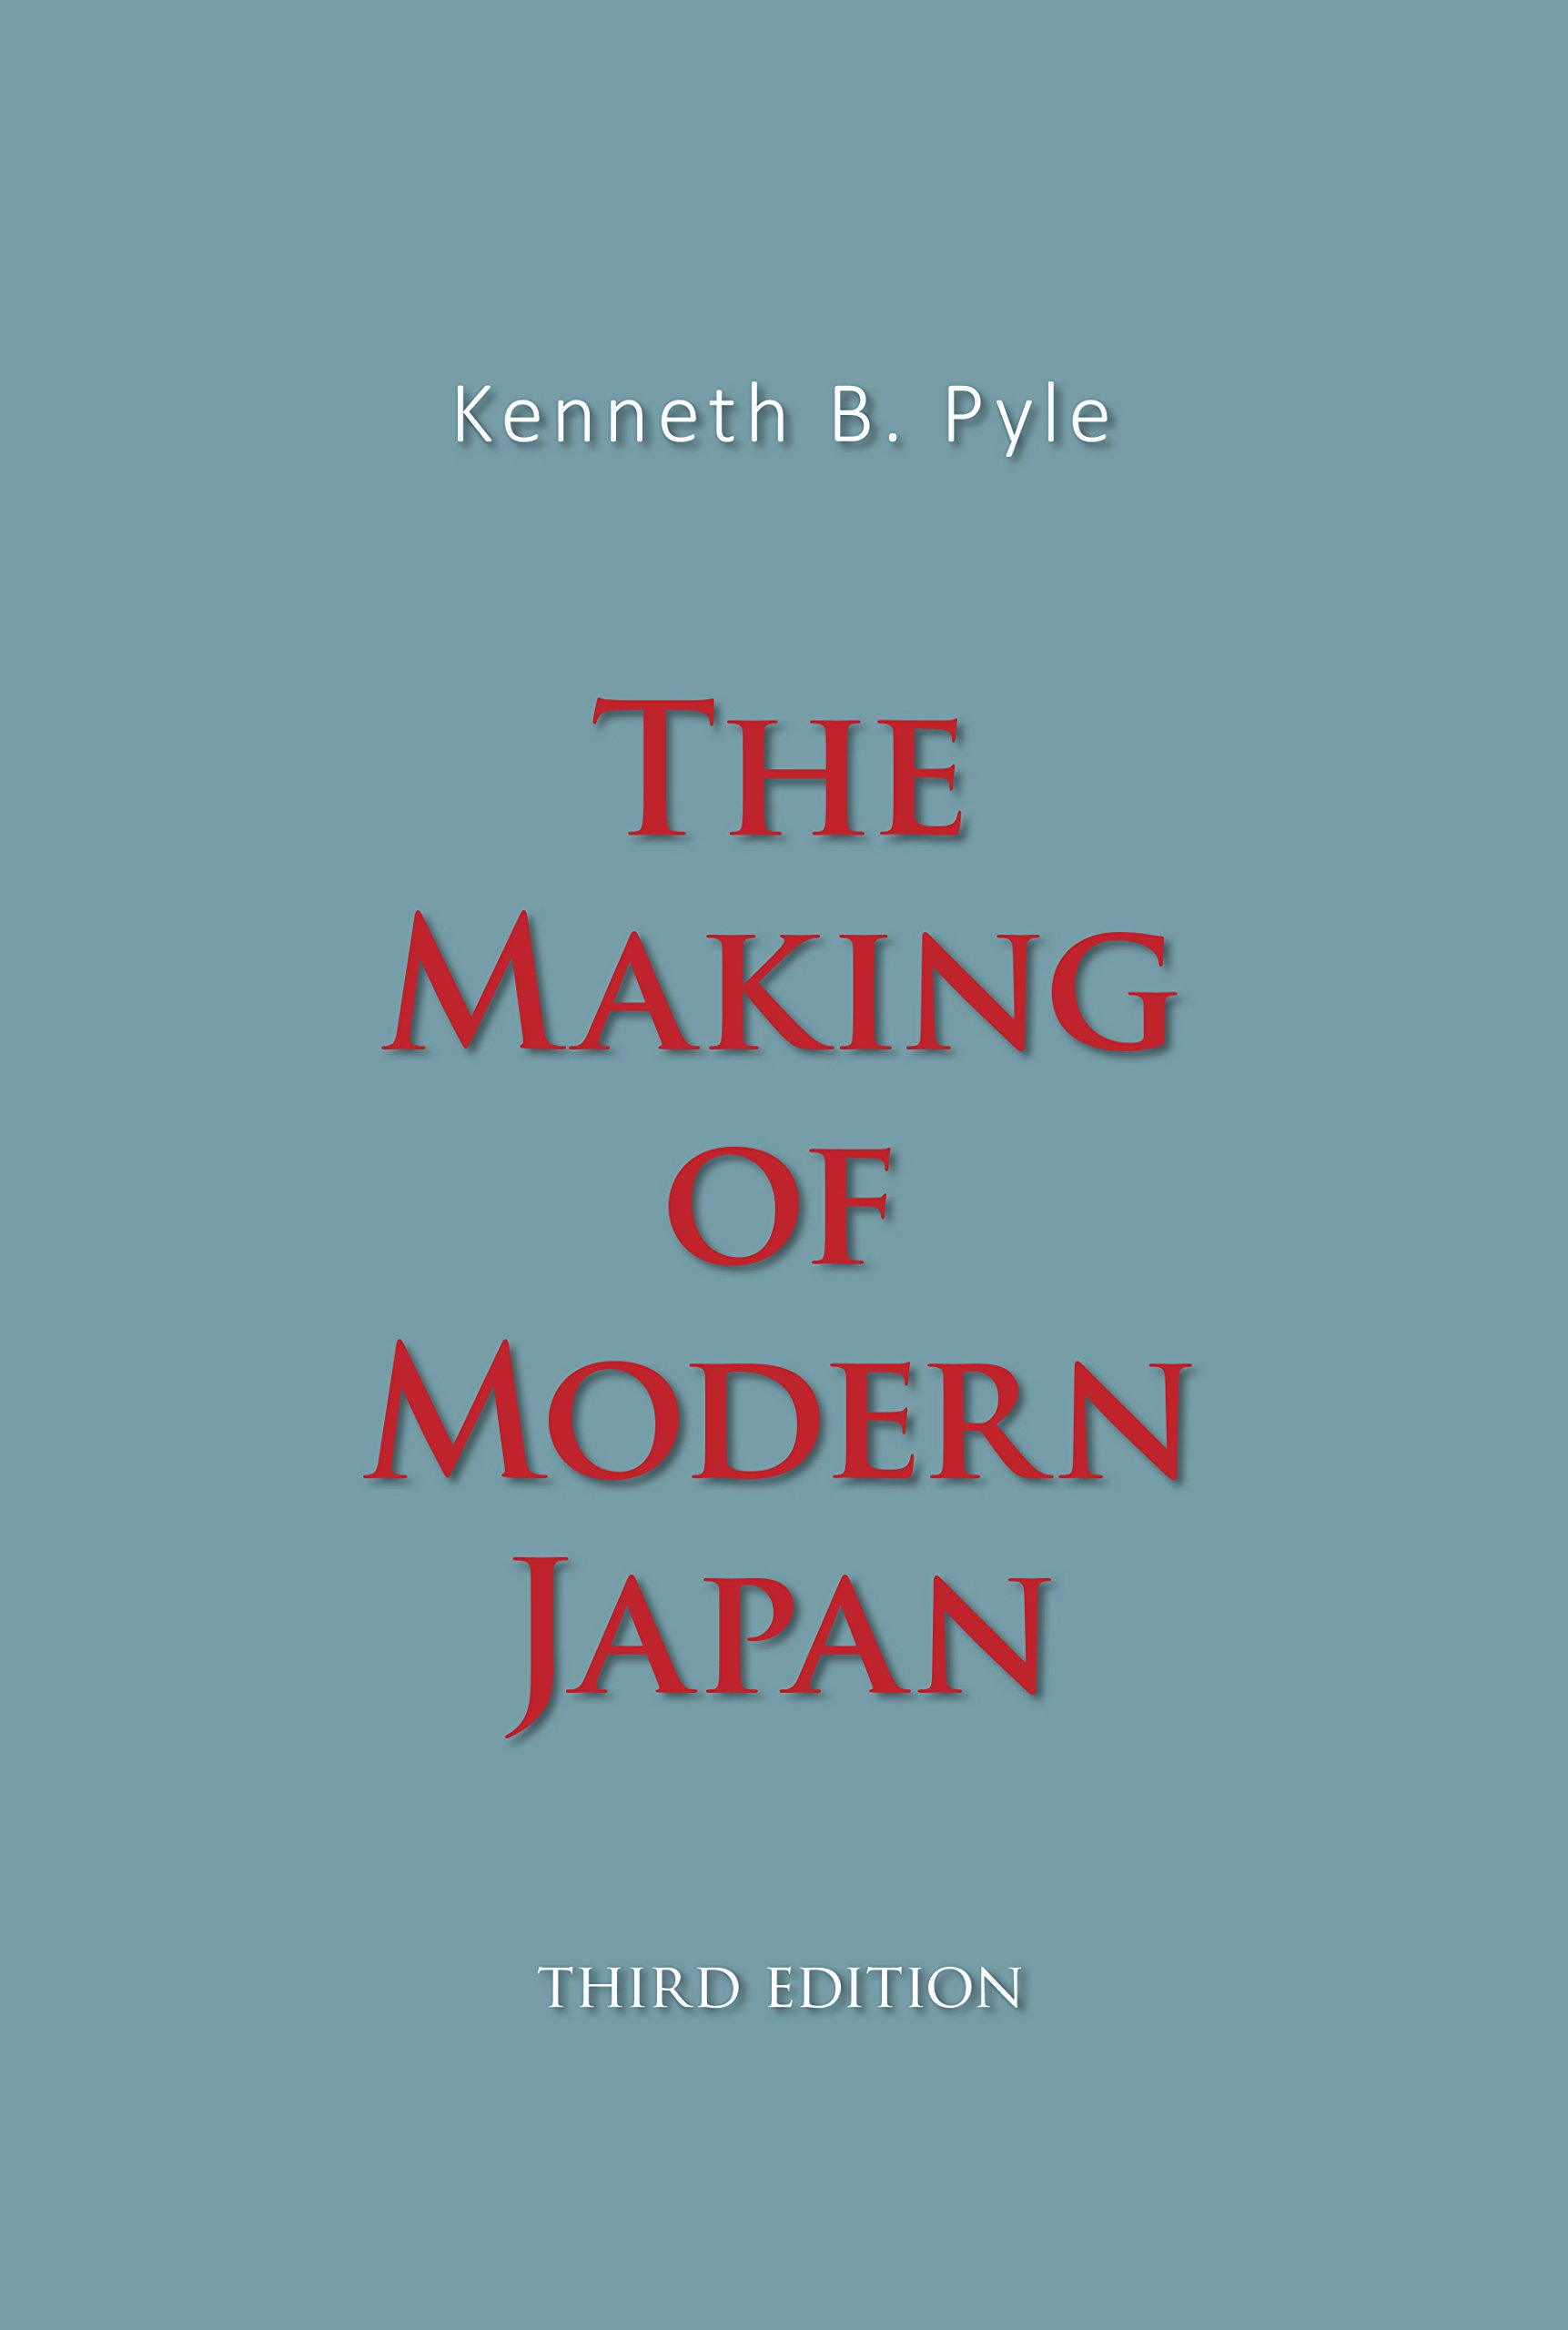 The making of modern japan kenneth b pyle 9781506697444 amazon the making of modern japan kenneth b pyle 9781506697444 amazon books fandeluxe Images